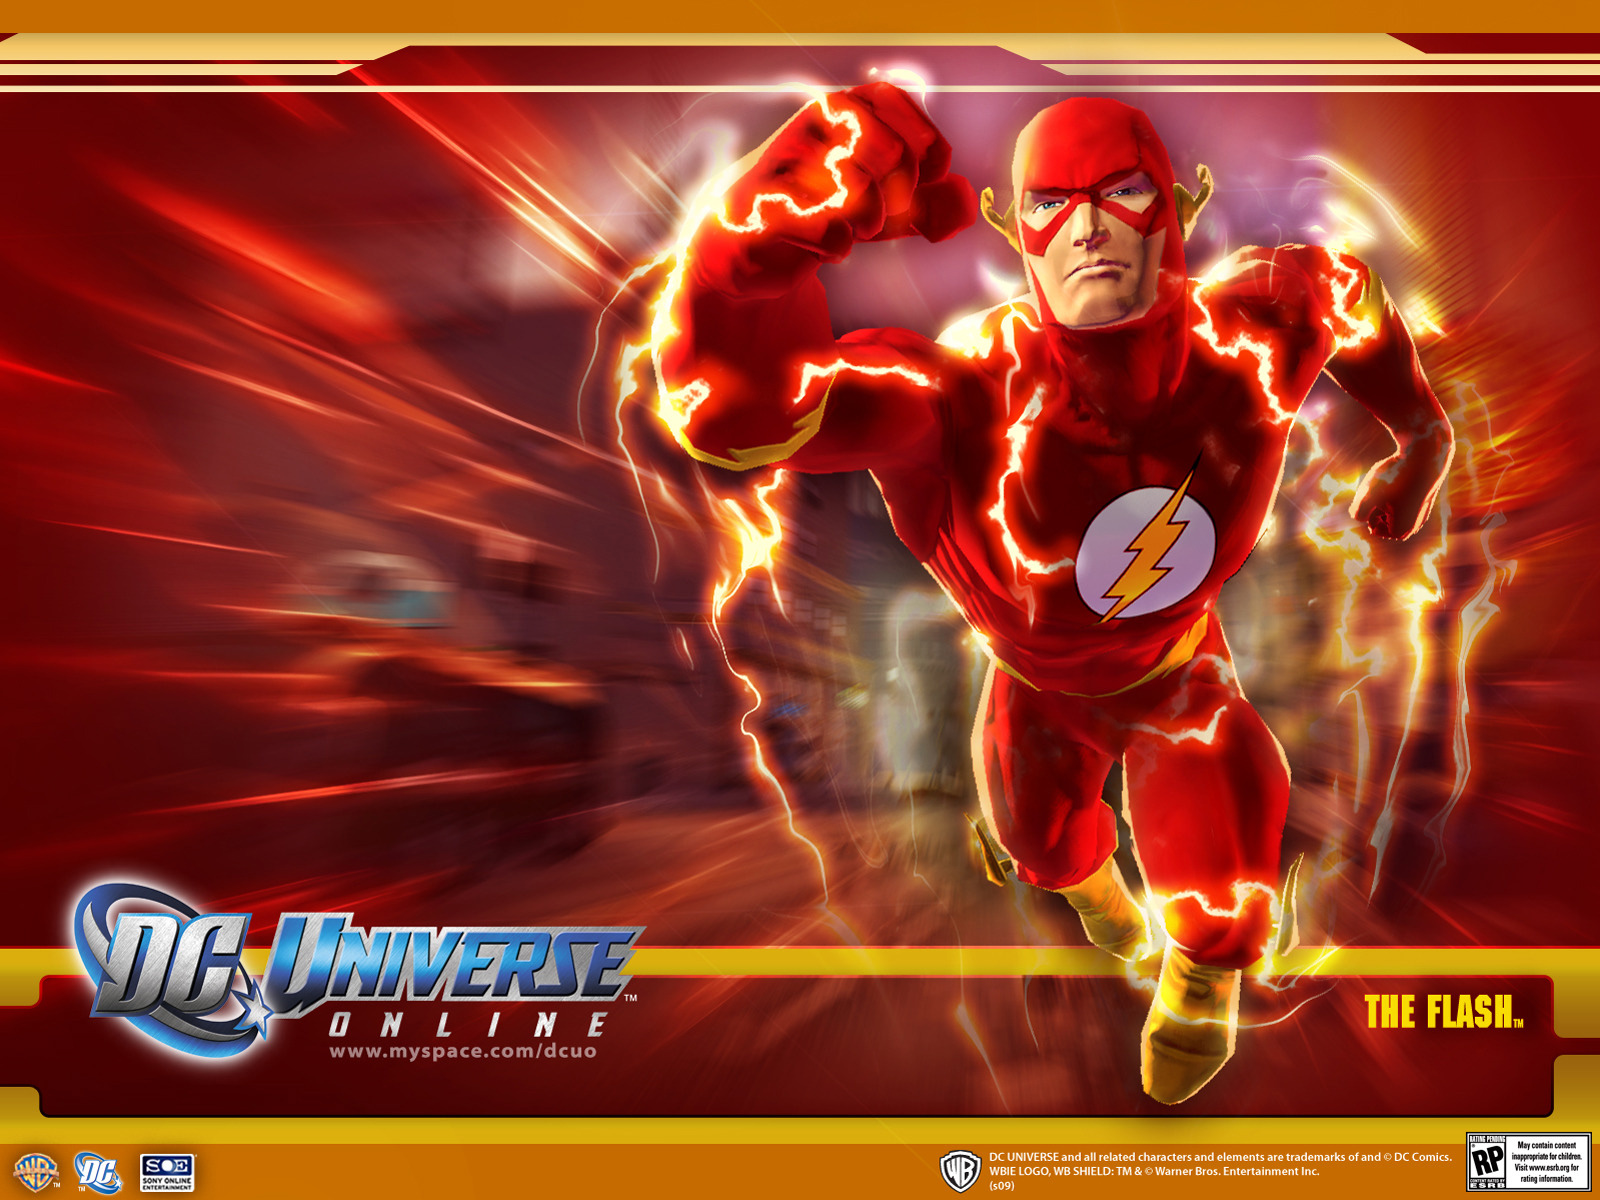 deviantartcomartThe Flash Superhero wallpaper part 7 321282468 1600x1200